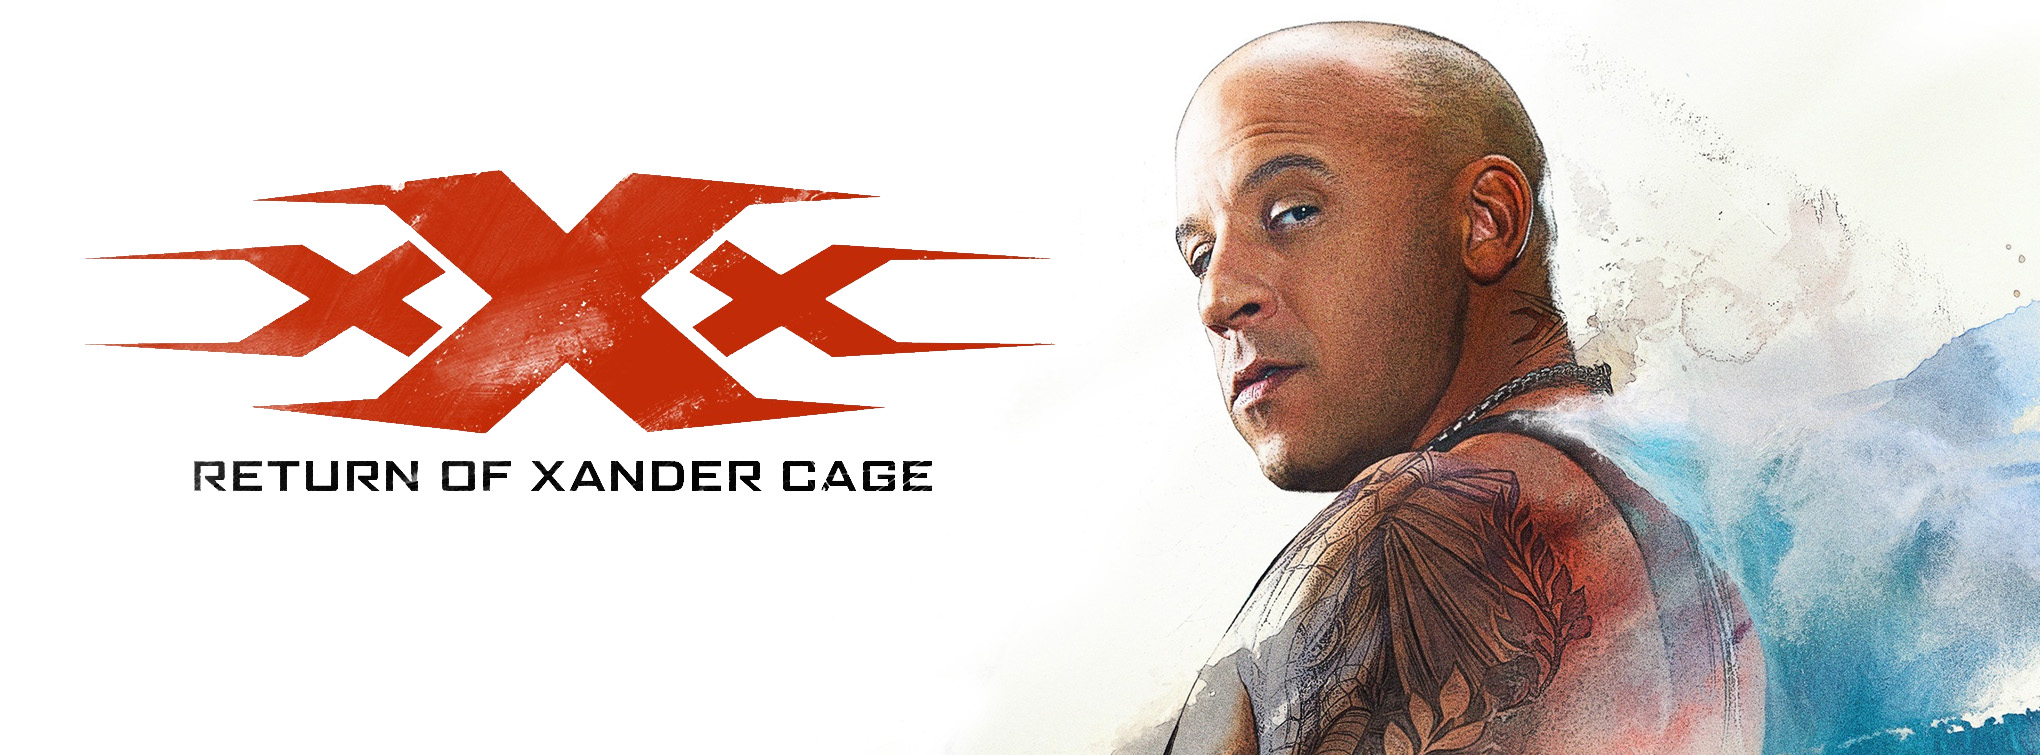 xXx: Return of Xander Cage - now playing!